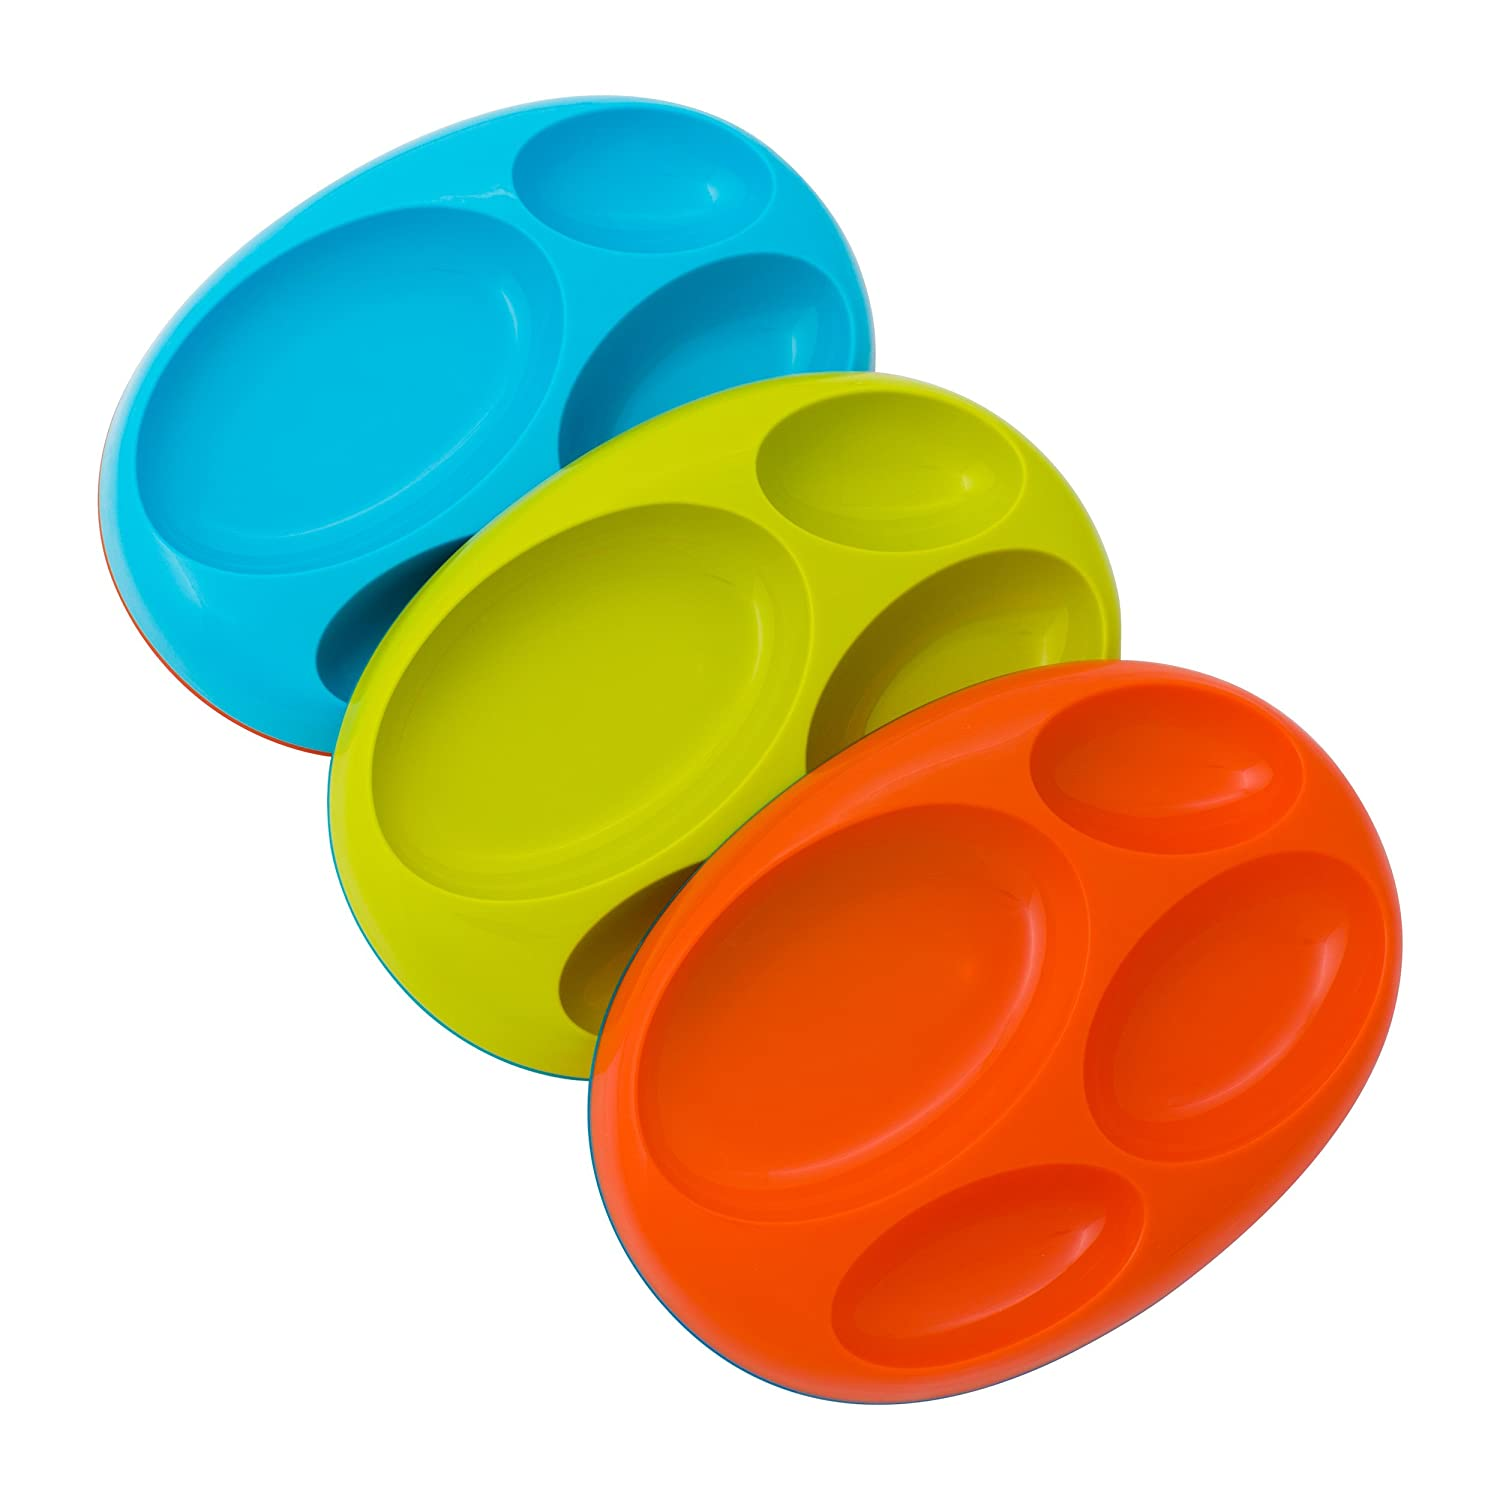 Boon Platter Edgeless Nonskid Divided Plate, Blue/Orange/Green includes 3 pieces